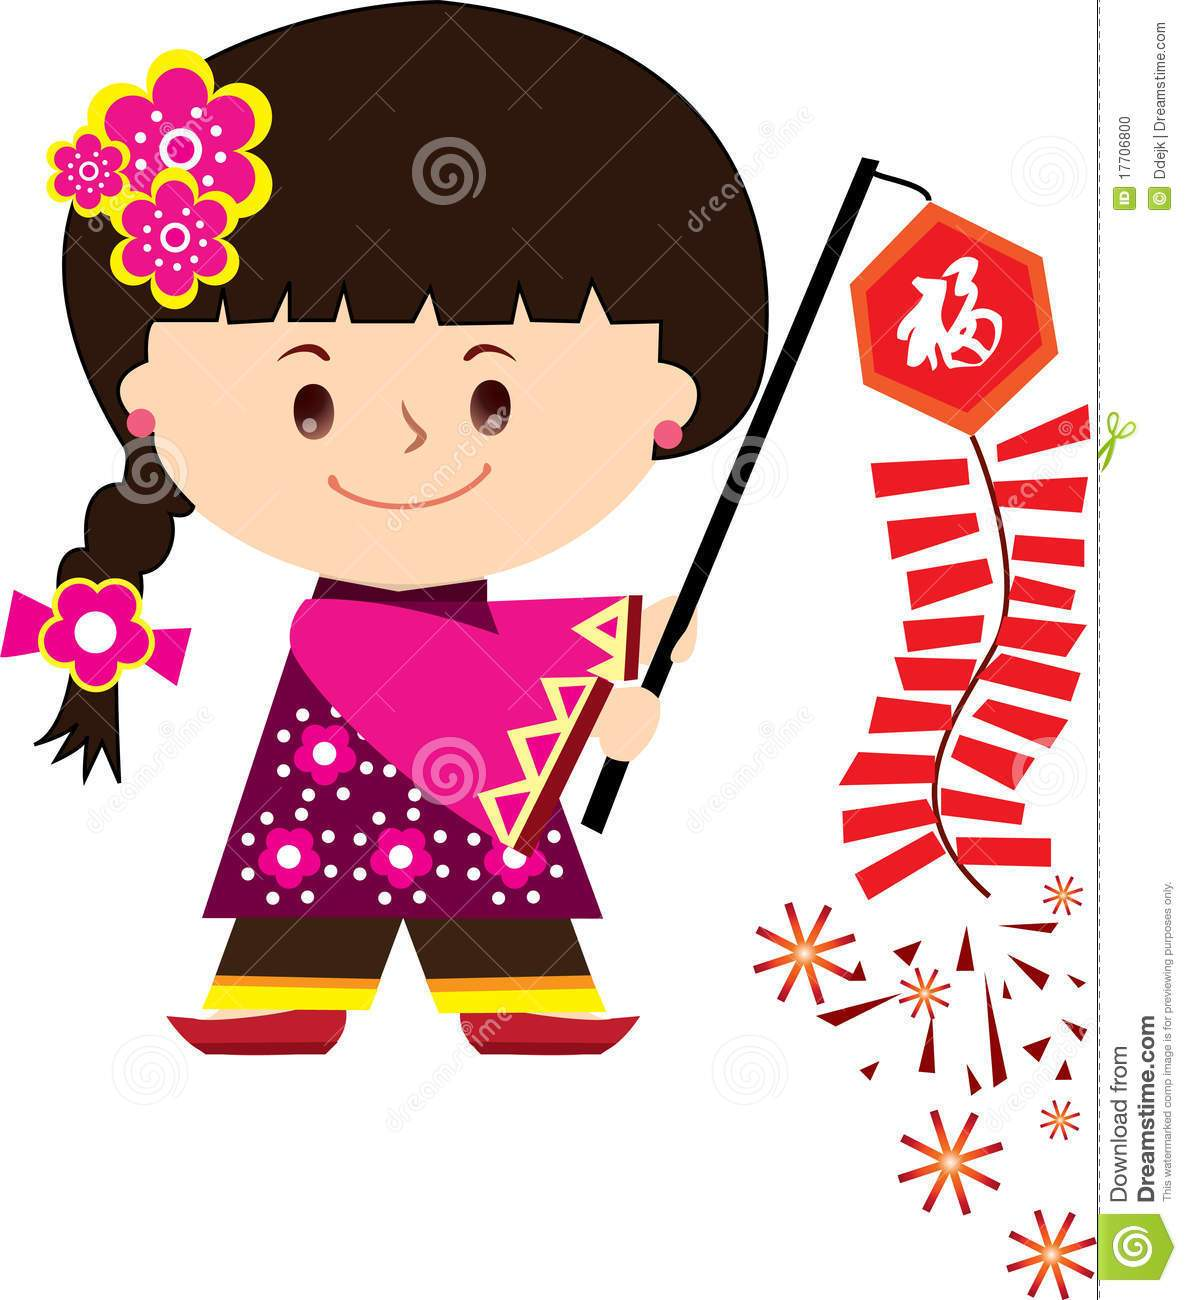 Chinese new year 2015 clipart png free Clipart chinese new year 2015 1 » Clipart Portal png free